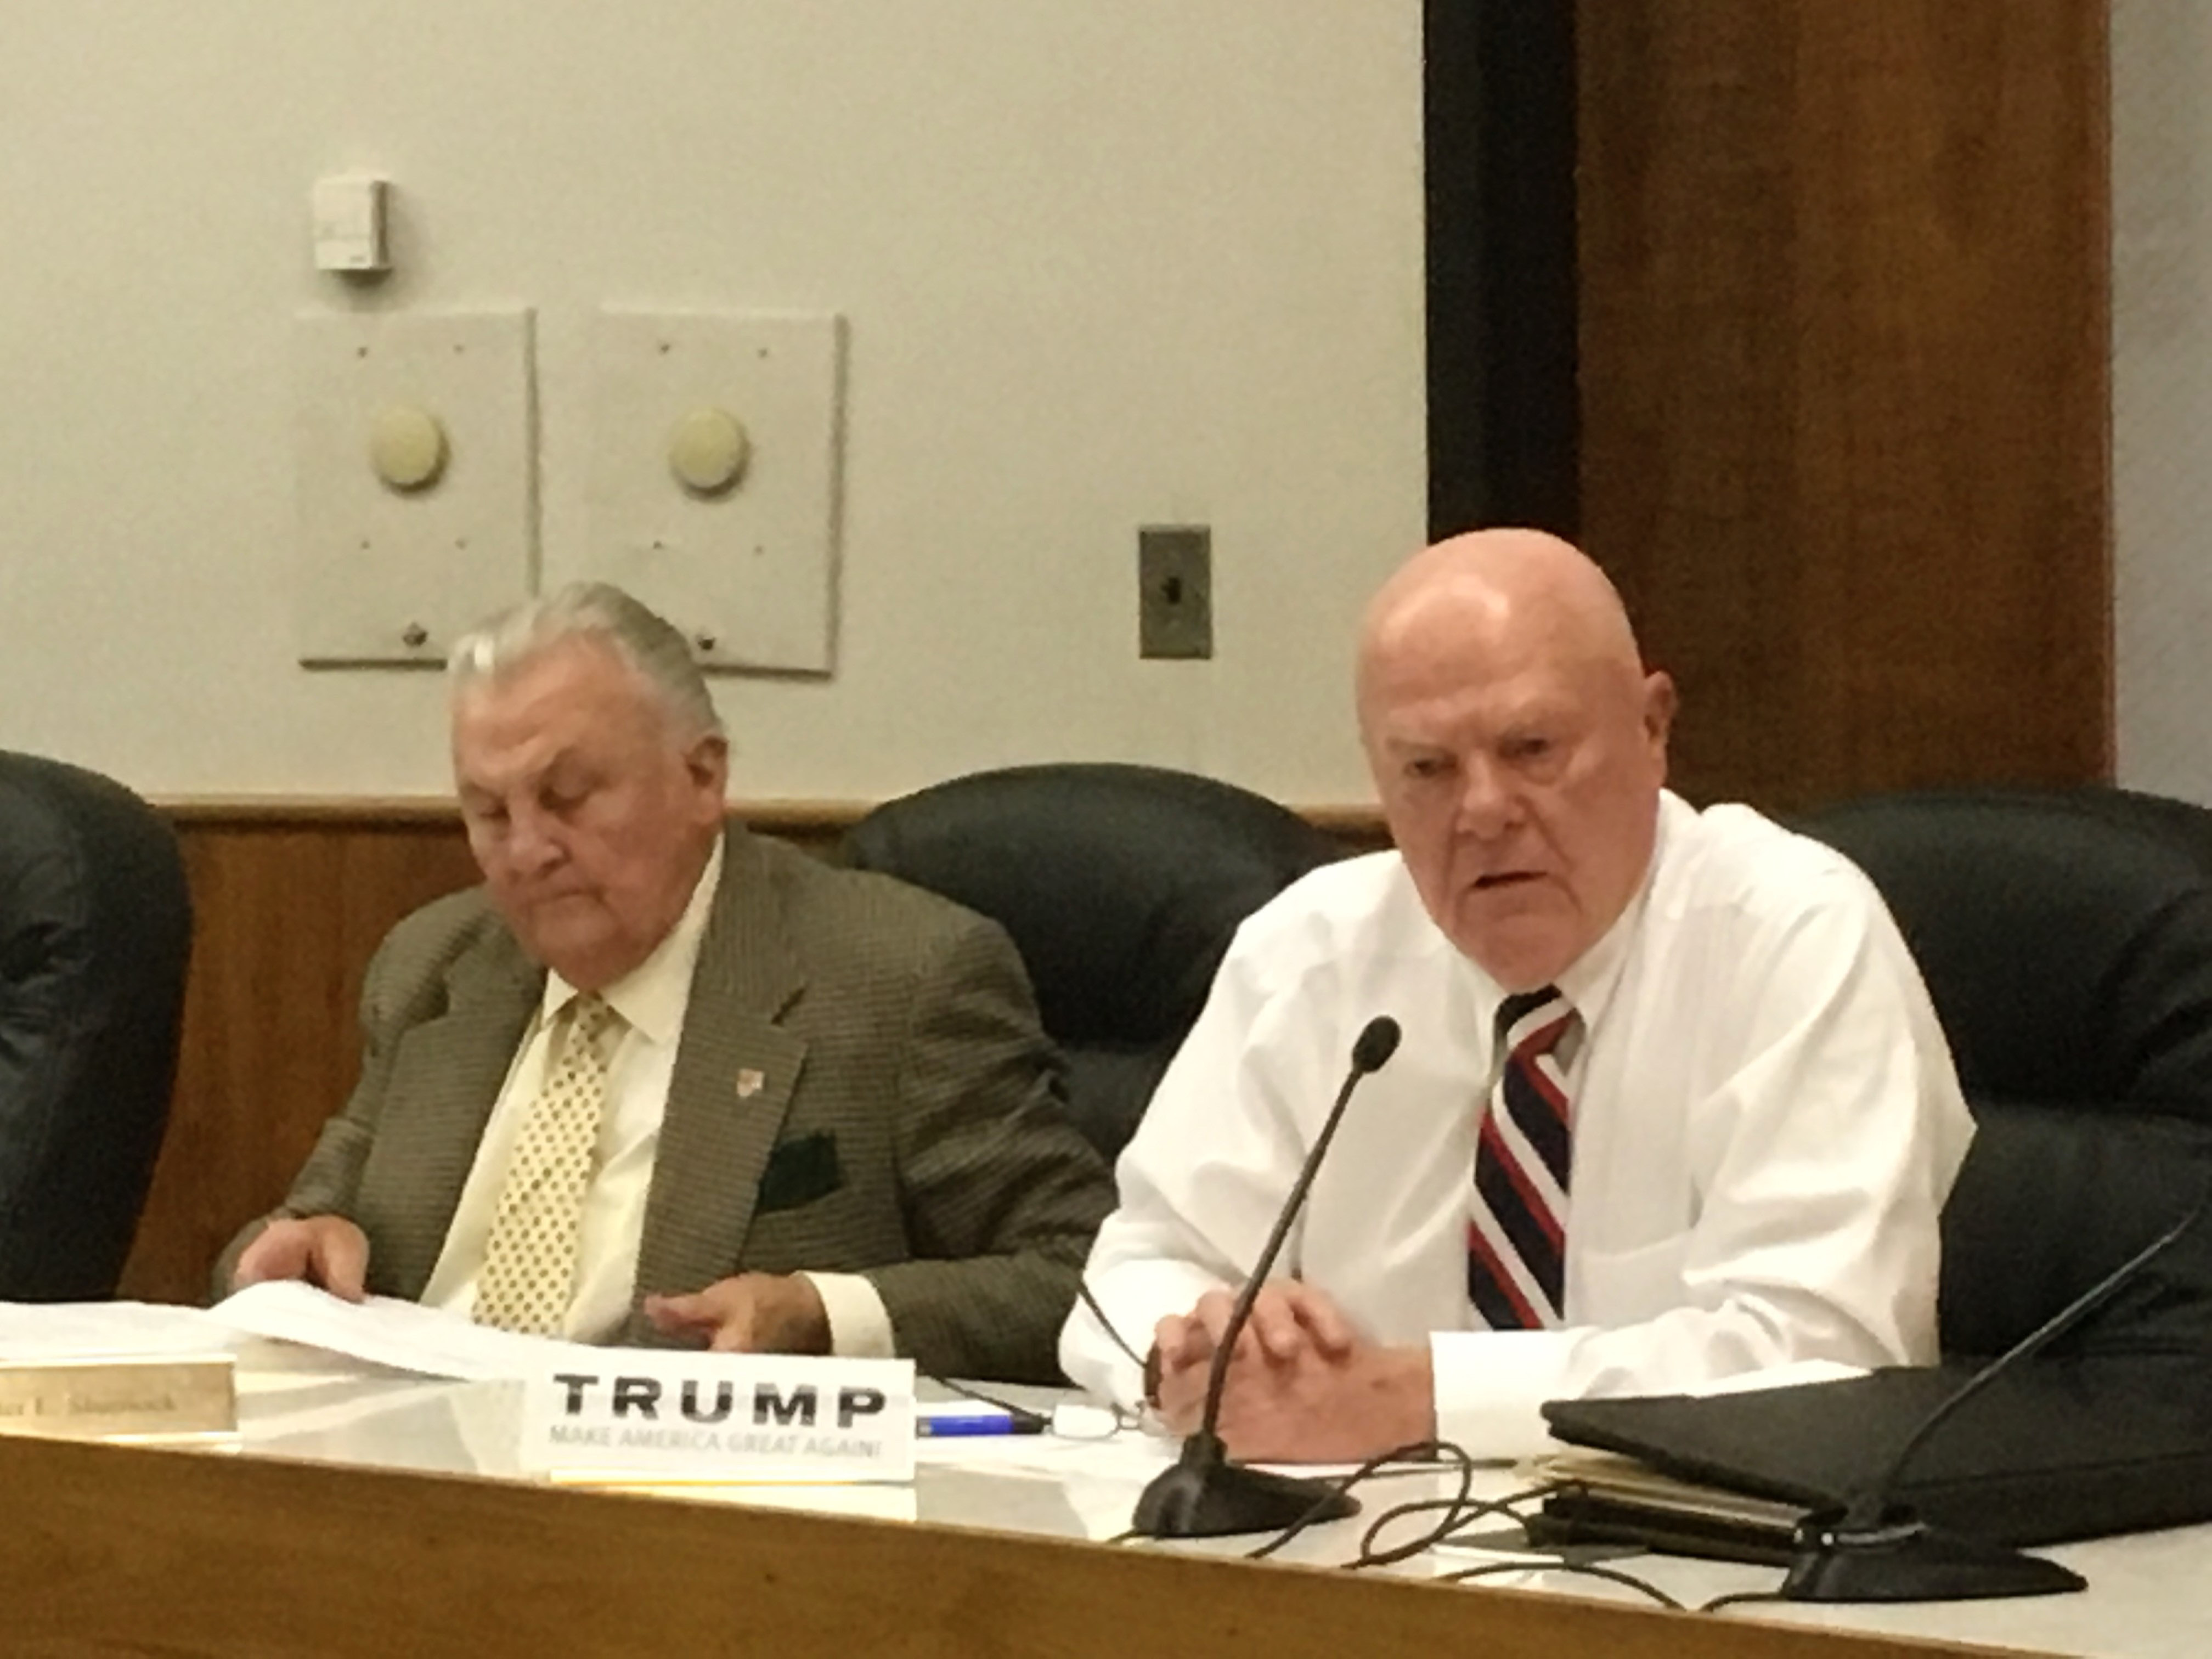 City Councilor Lenny Rich, right, displayed his support for President-elect Donald Trump during Monday's City Council meeting. | Leigh Tauss, Record-Journal